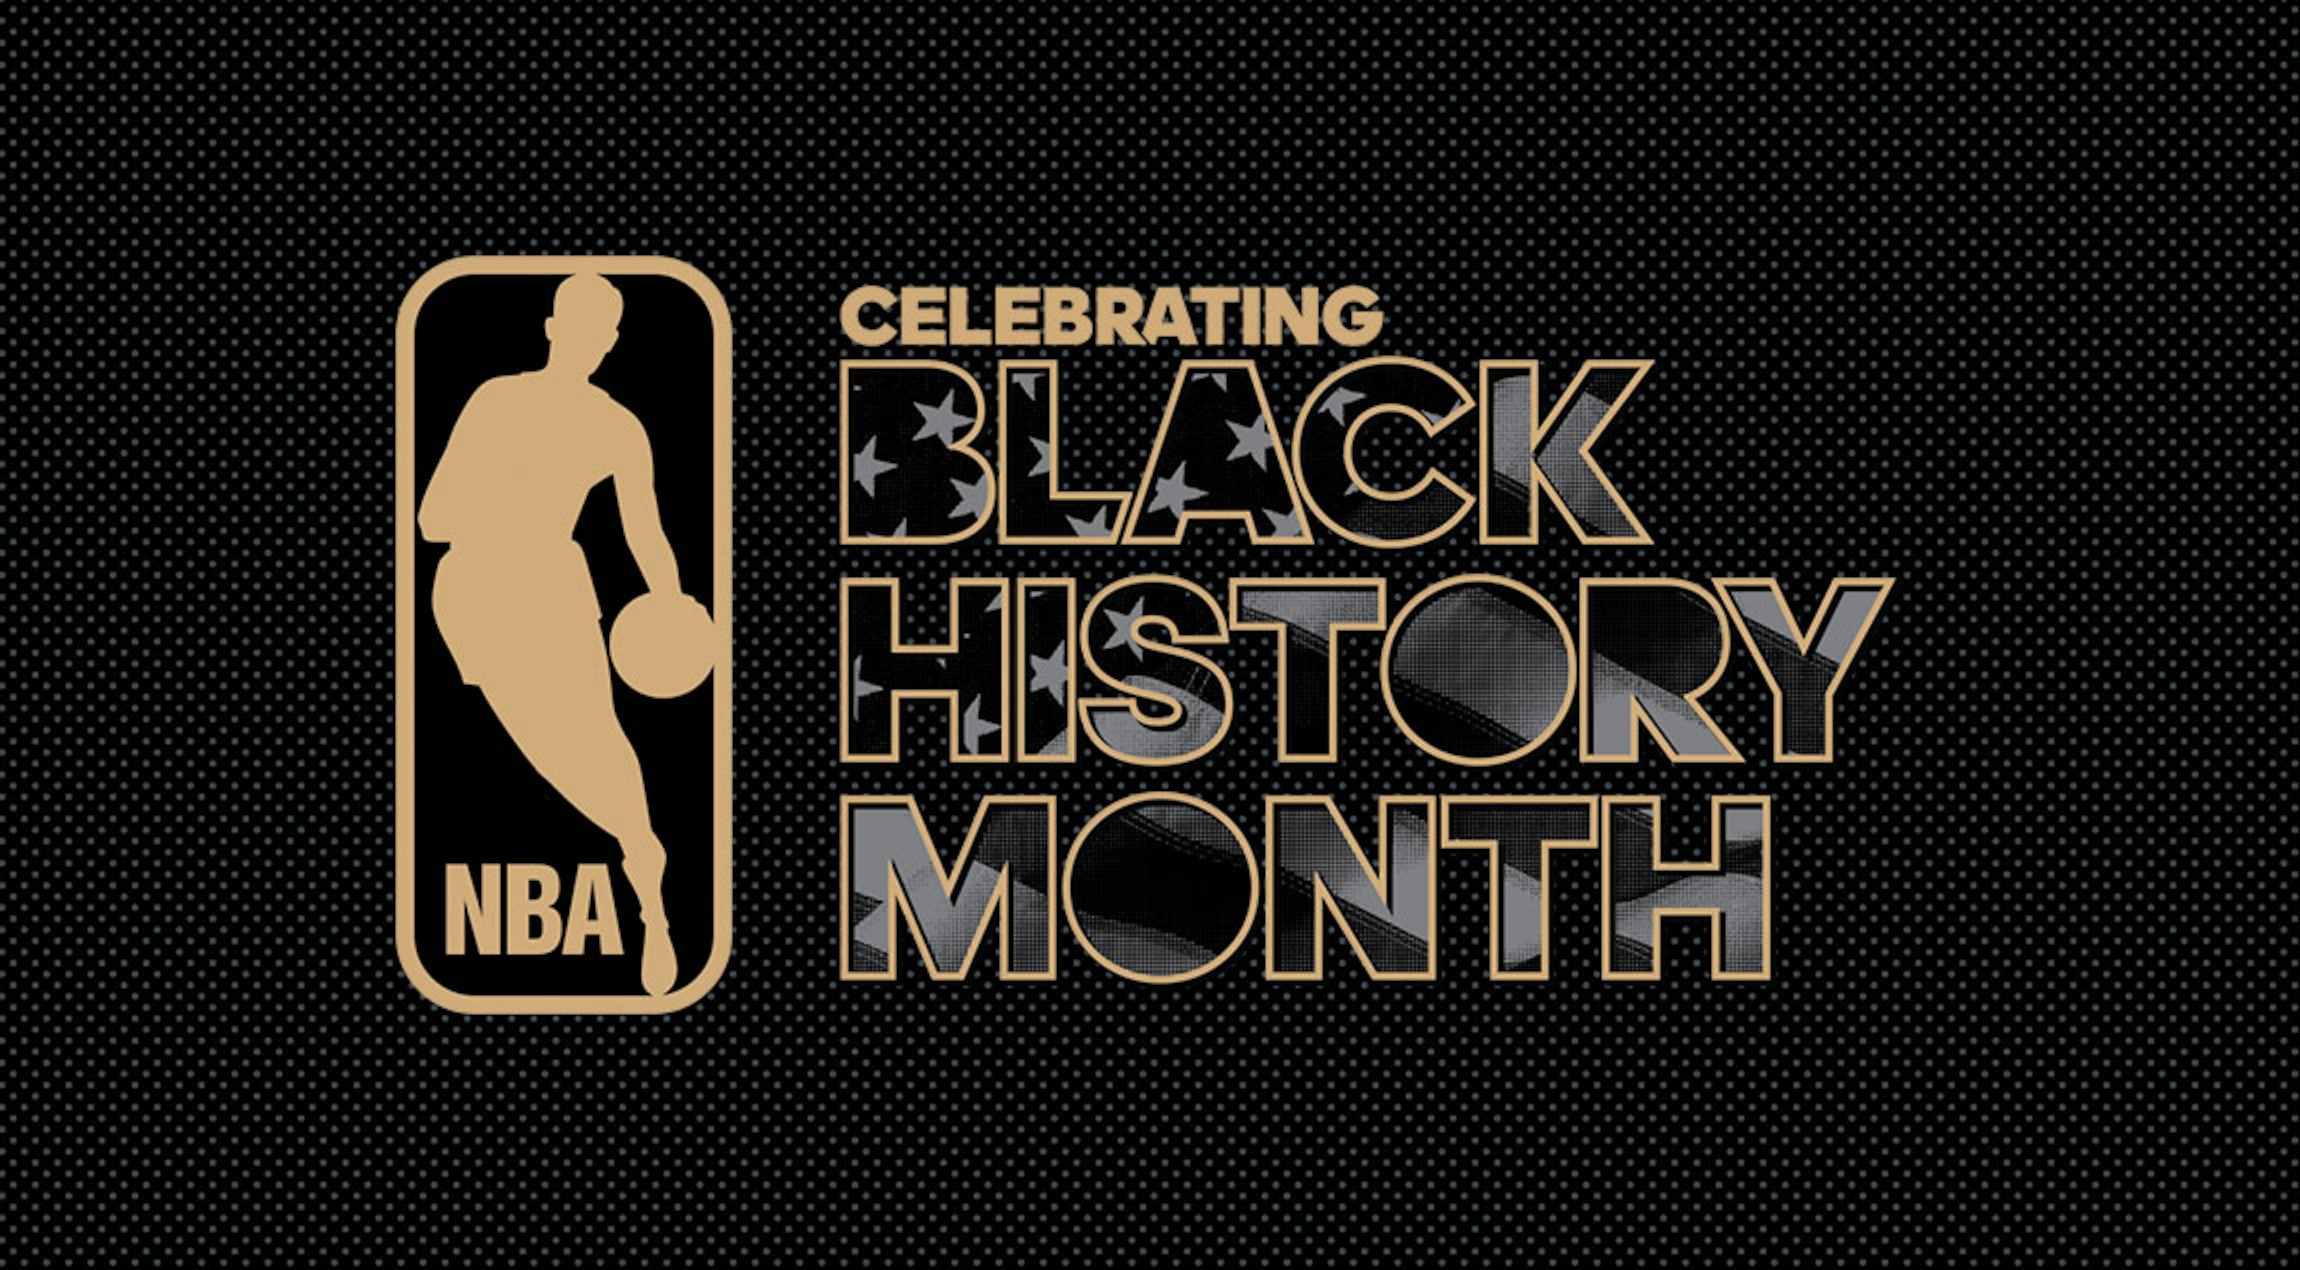 Sacramento Kings Celebrate Black History Month With Special Entertainment Exhibits And Community Awards Sacramento Kings